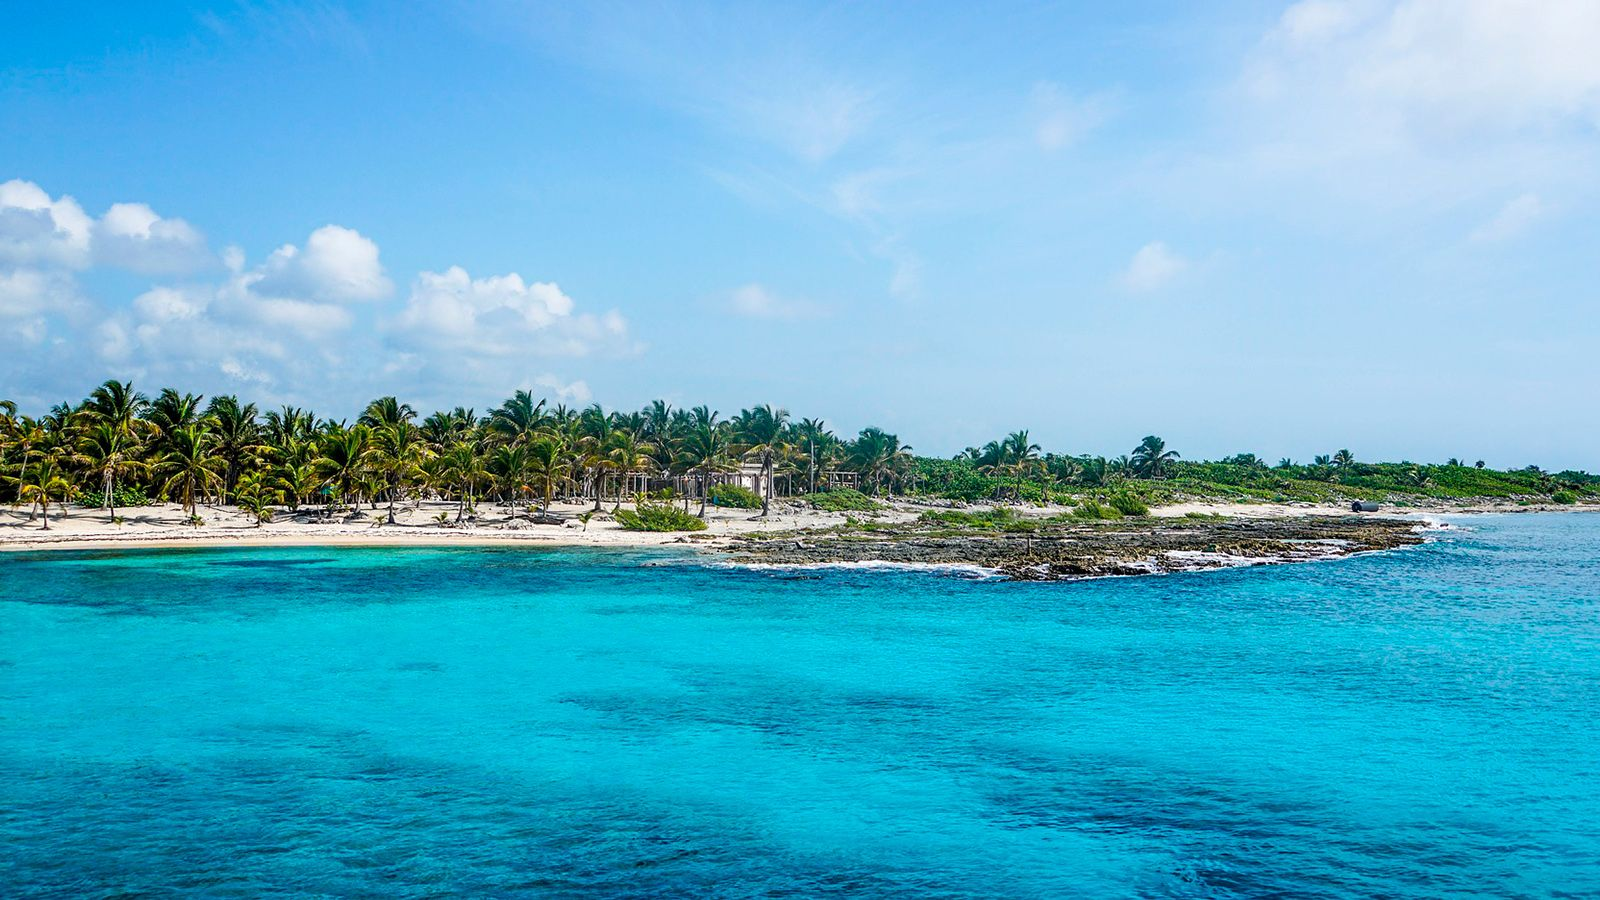 Discover the Island of Cozumel